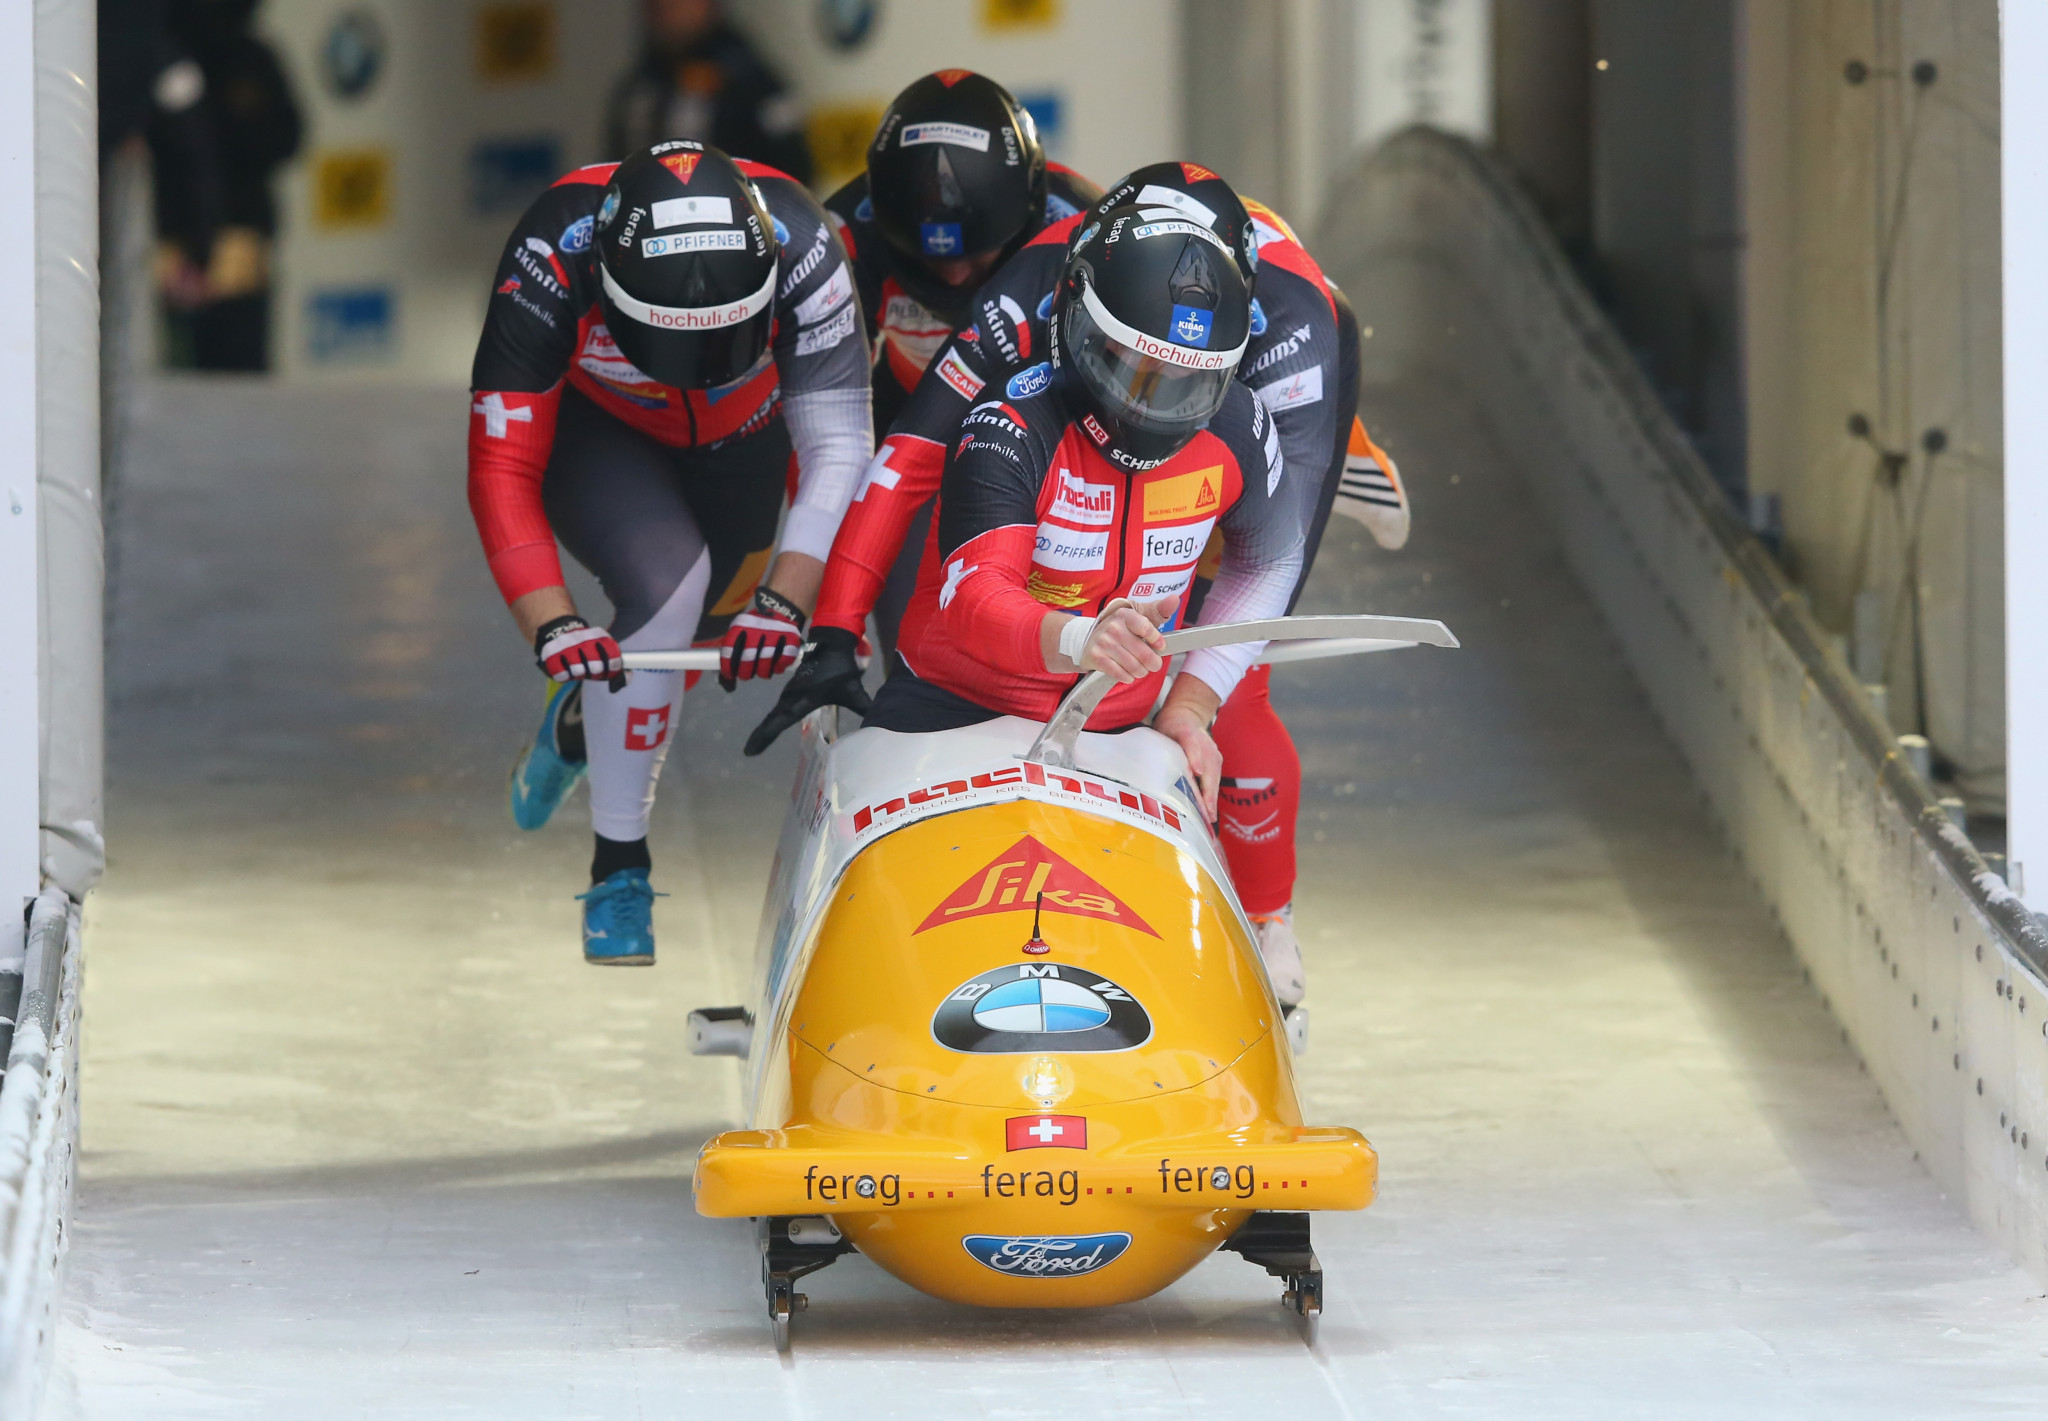 IBSF confirm four-man will not be part of World Cups in 2020